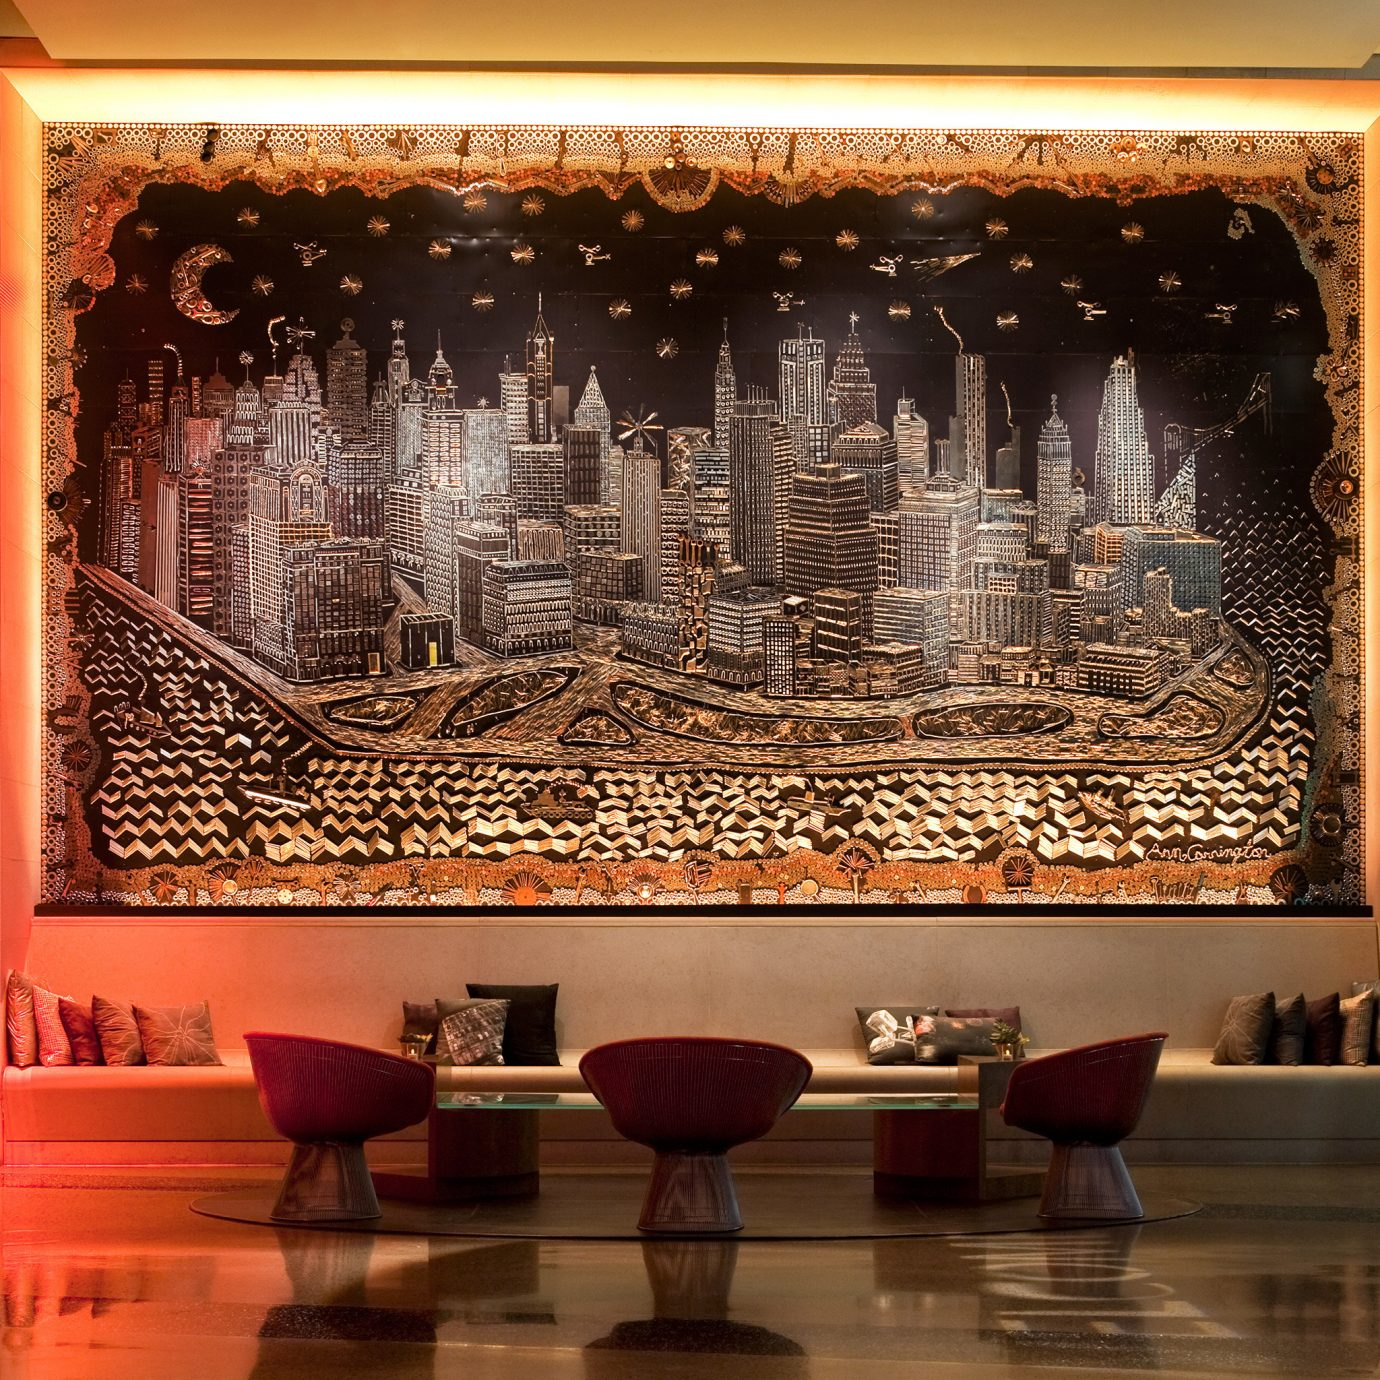 Dining Drink Eat Lounge Luxury Modern Lobby Fireplace tourist attraction display window Bar living room